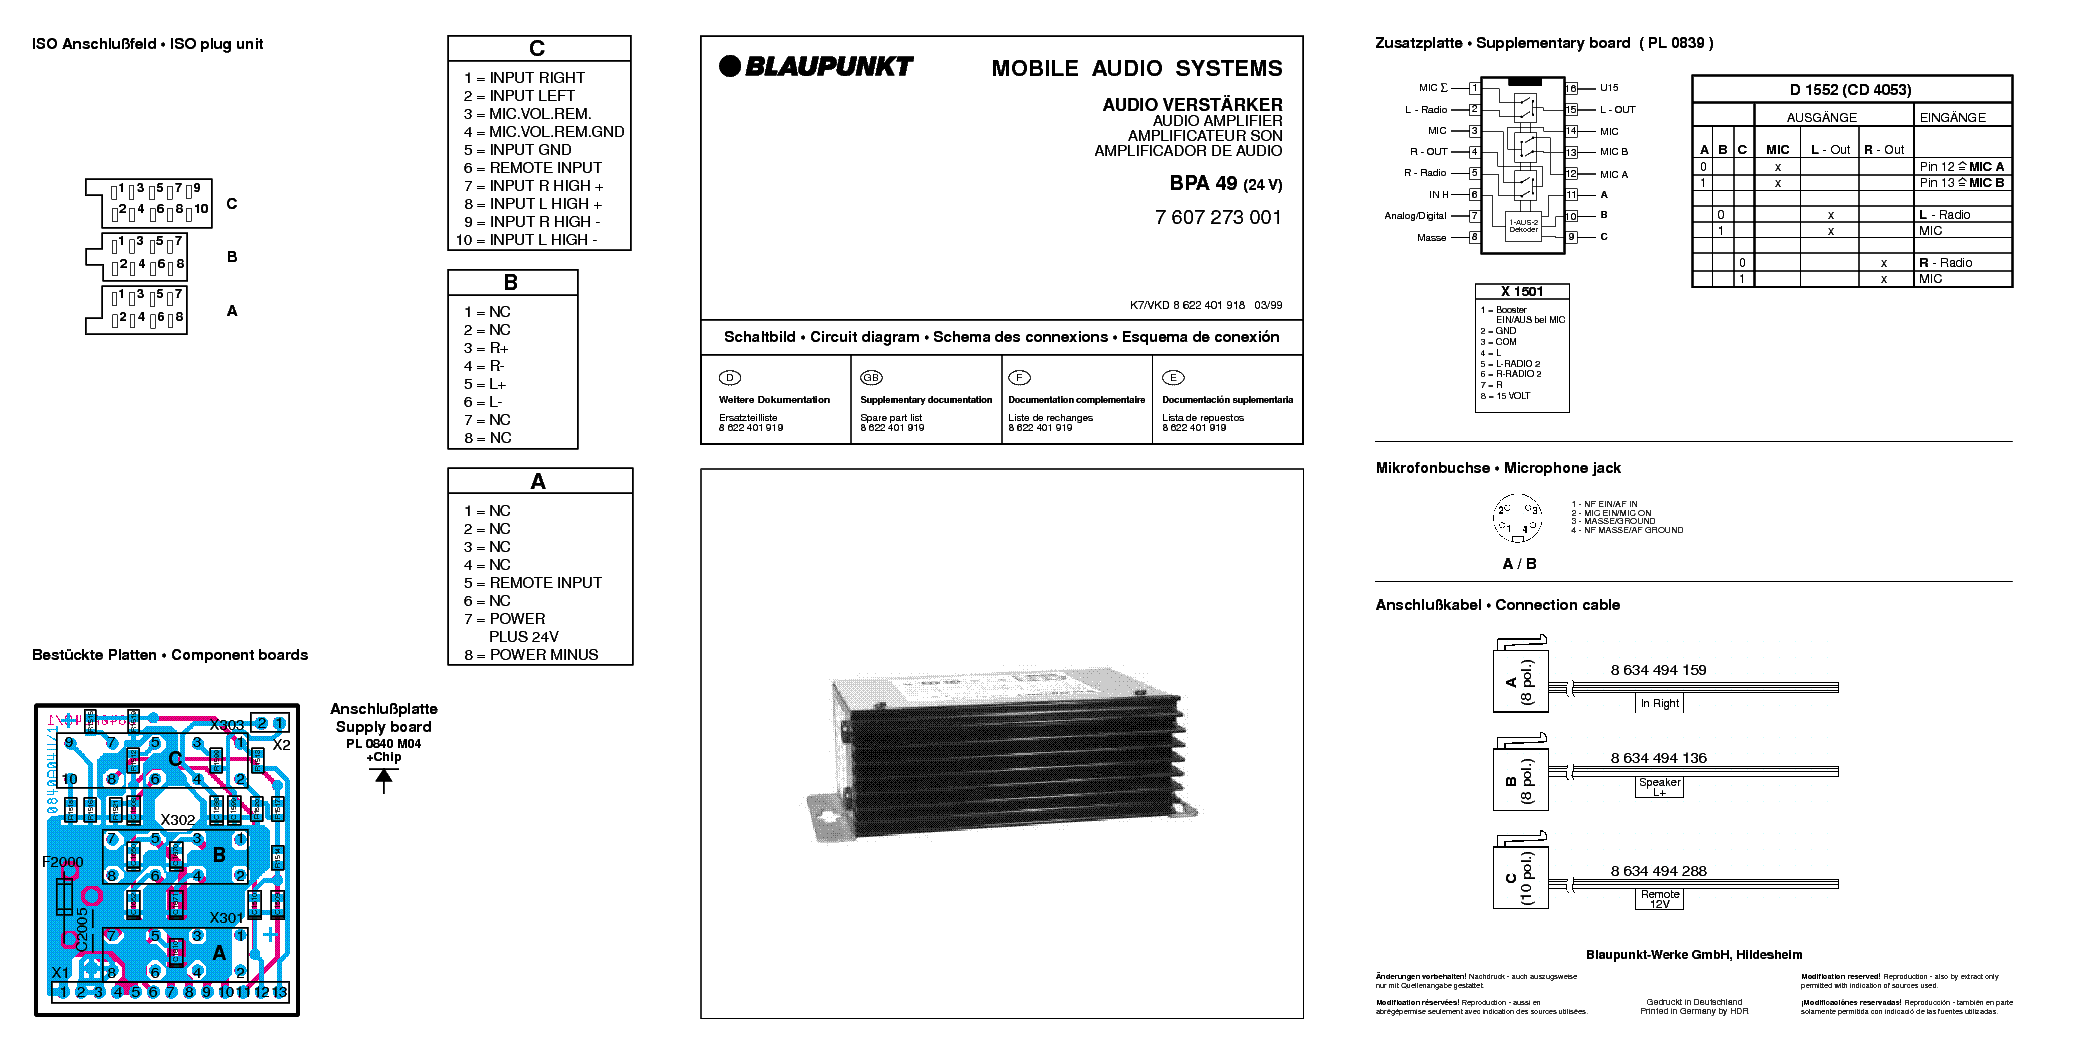 blaupunkt bpa 49 24v sch service manual download. Black Bedroom Furniture Sets. Home Design Ideas